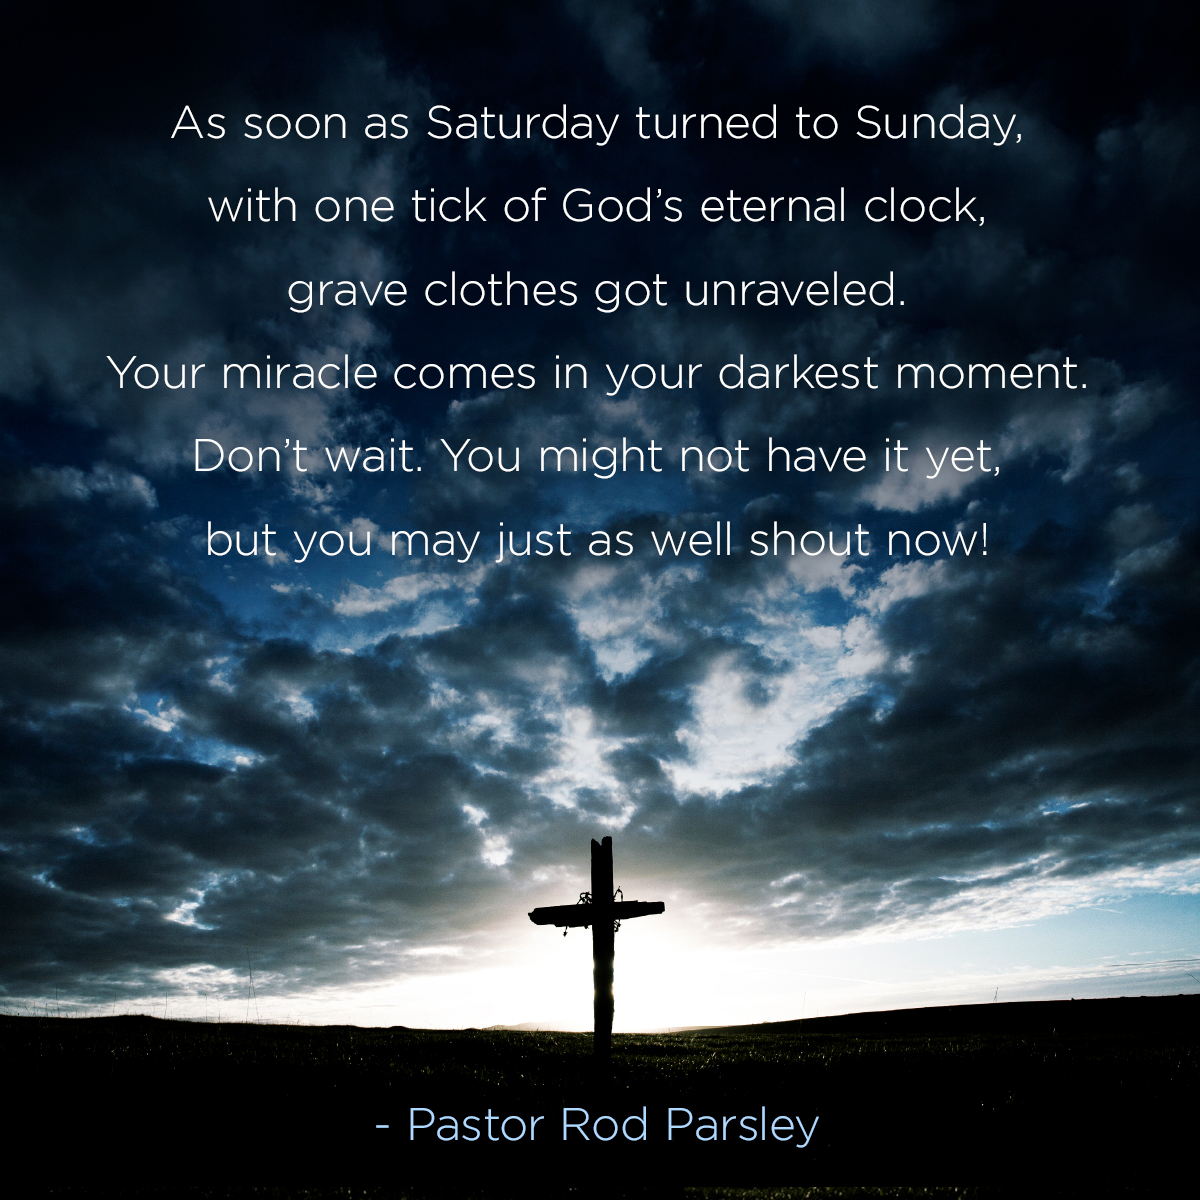 "As soon as Saturday turned to Sunday, with one tick of God's eternal clock, grave clothes got unraveled. Your miracle comes in your darkest moment. Don't wait. You might not have it yet, but you may just as well shout now!"" – Pastor Rod Parsley"